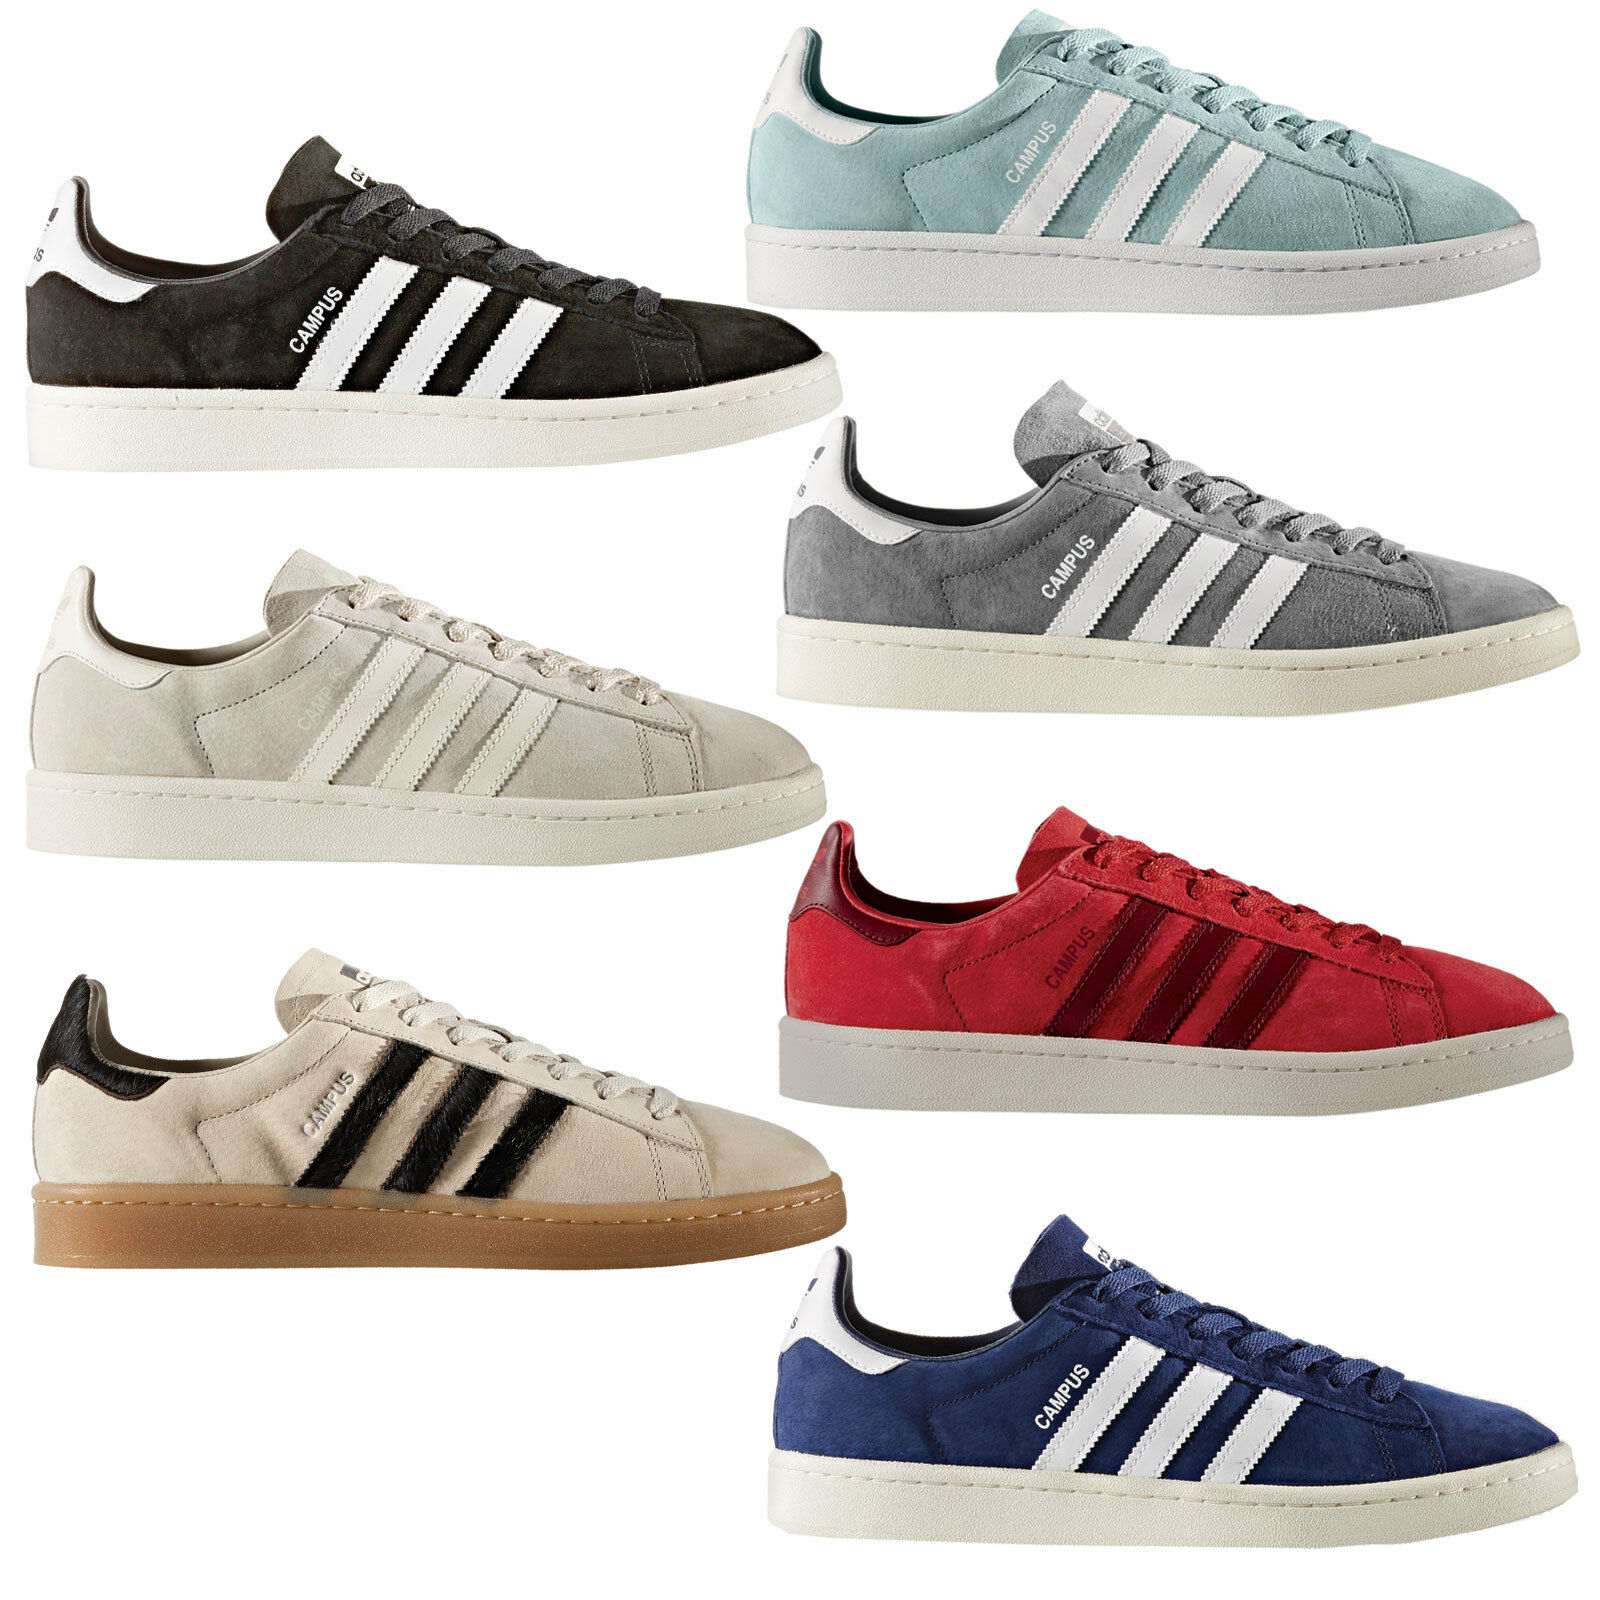 Adidas Originals Campus Men's Trainer Trainers Sport shoes Summer shoes New